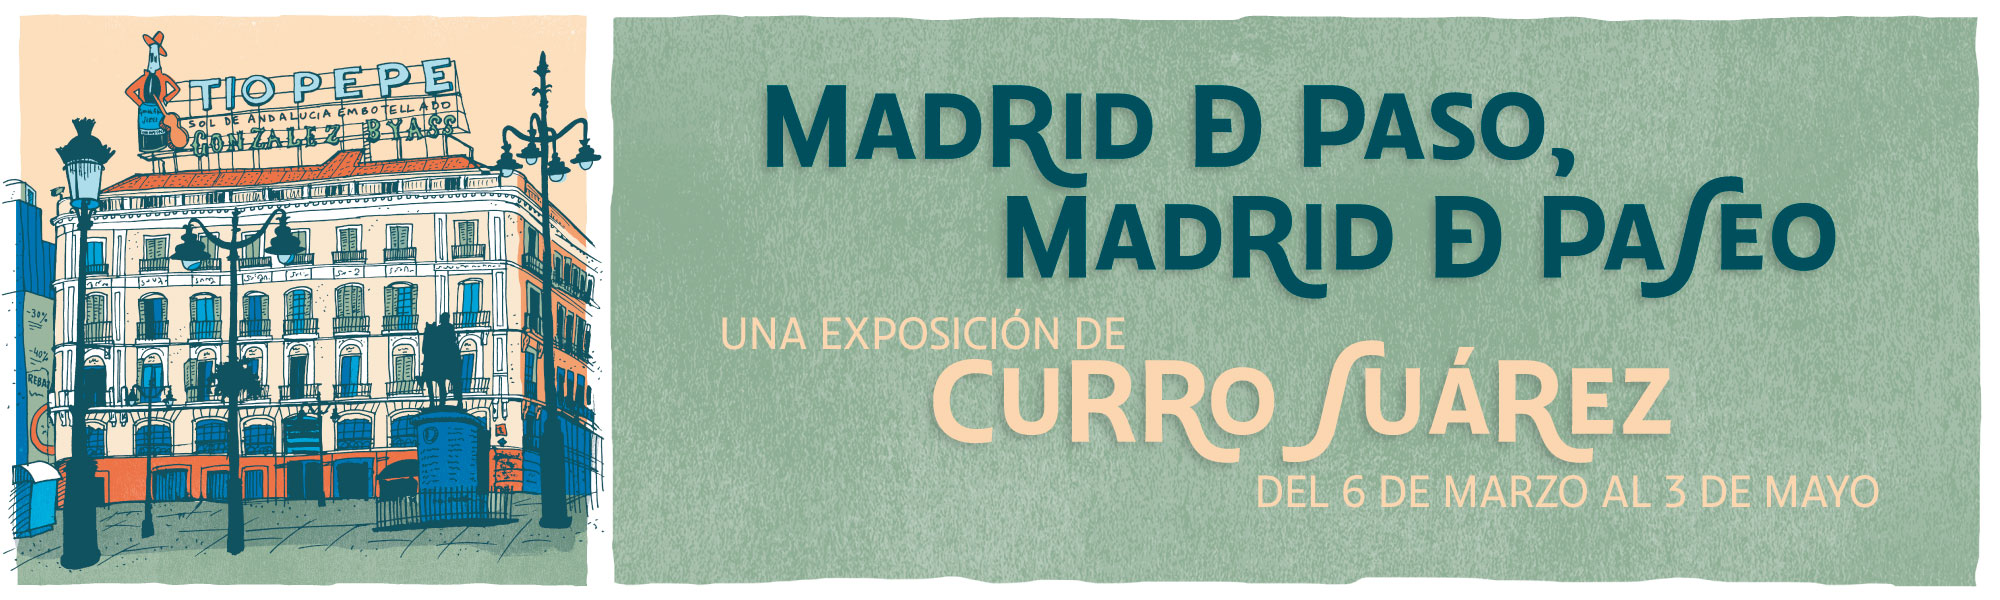 slide-curro-madrid